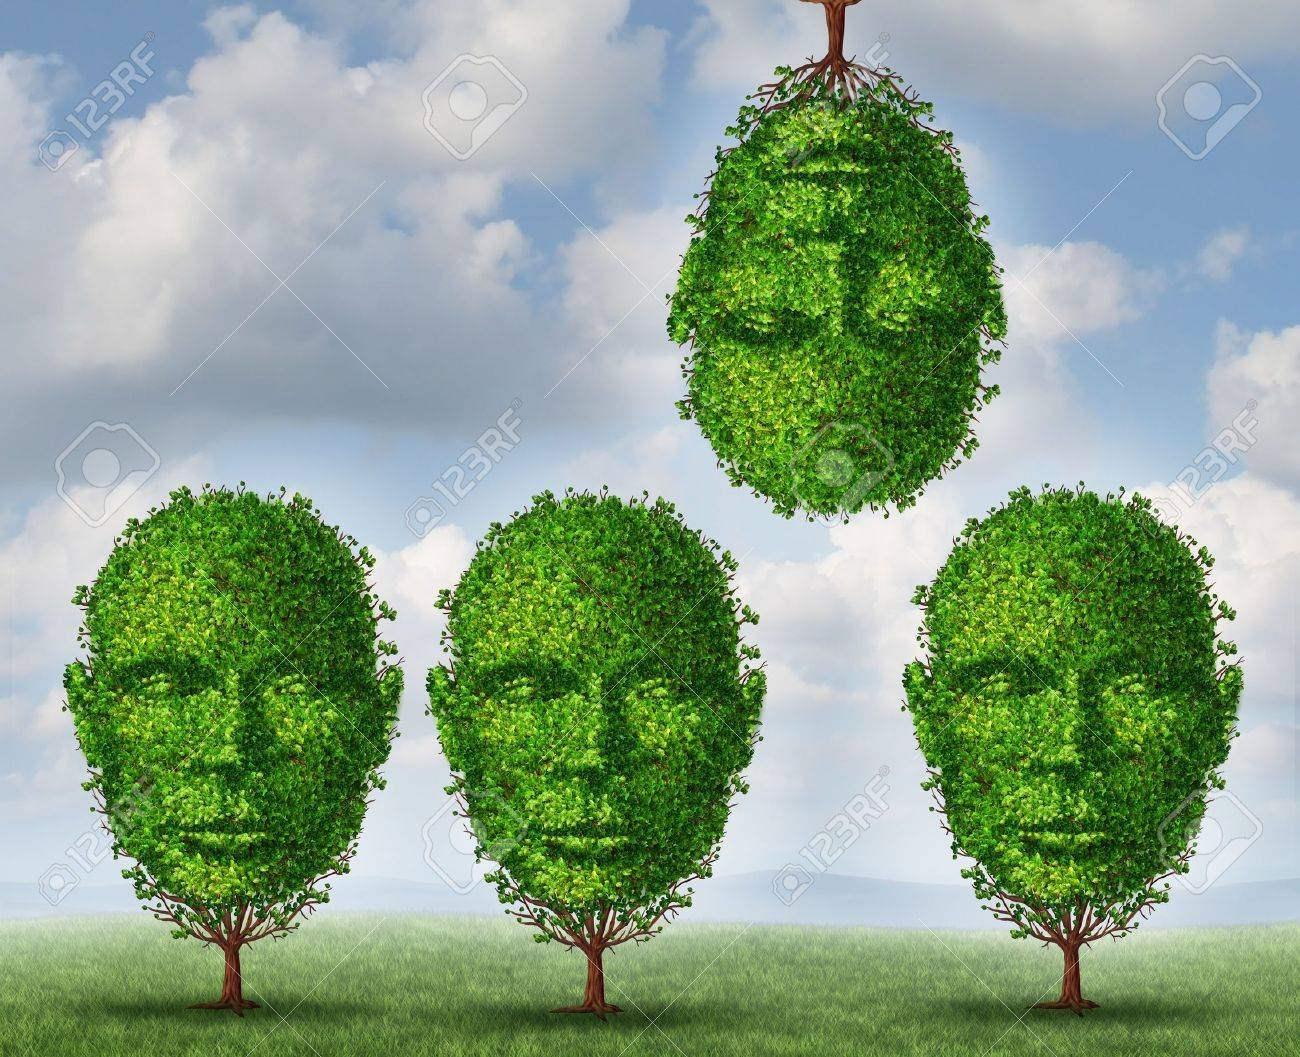 Thinking different creativity concept with a group of trees shaped as a human head with one tree upside down as a symbol freedom and of out of the box creative solutions on a summer sky background Stock Photo - 21492060